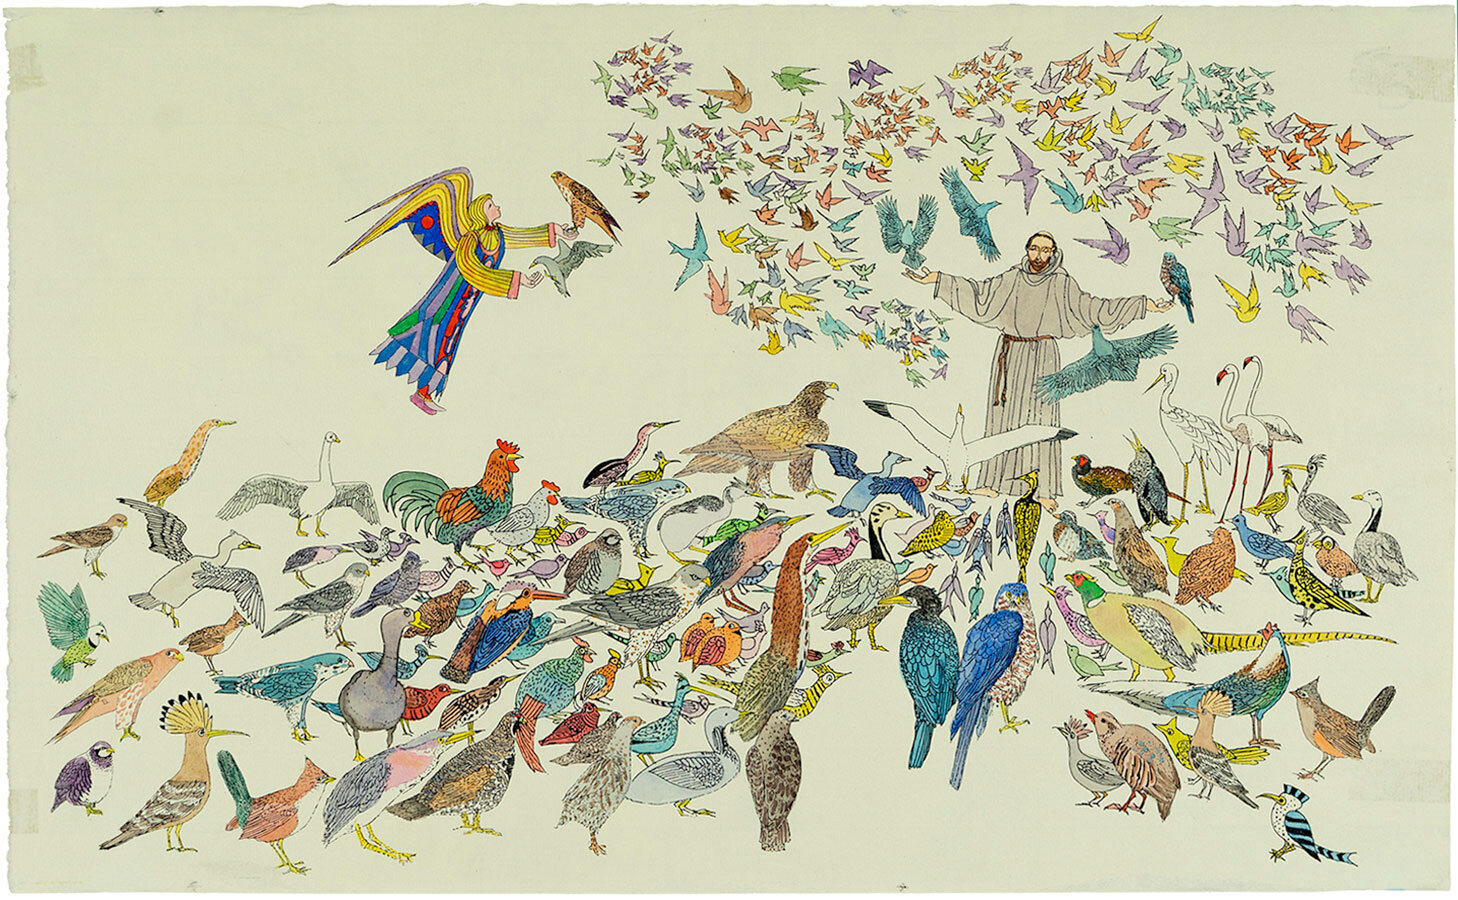 Francis-preaches-to-the-birds-original-illustration-from-Saint-Francis-by-Brian-Wildsmith.jpg